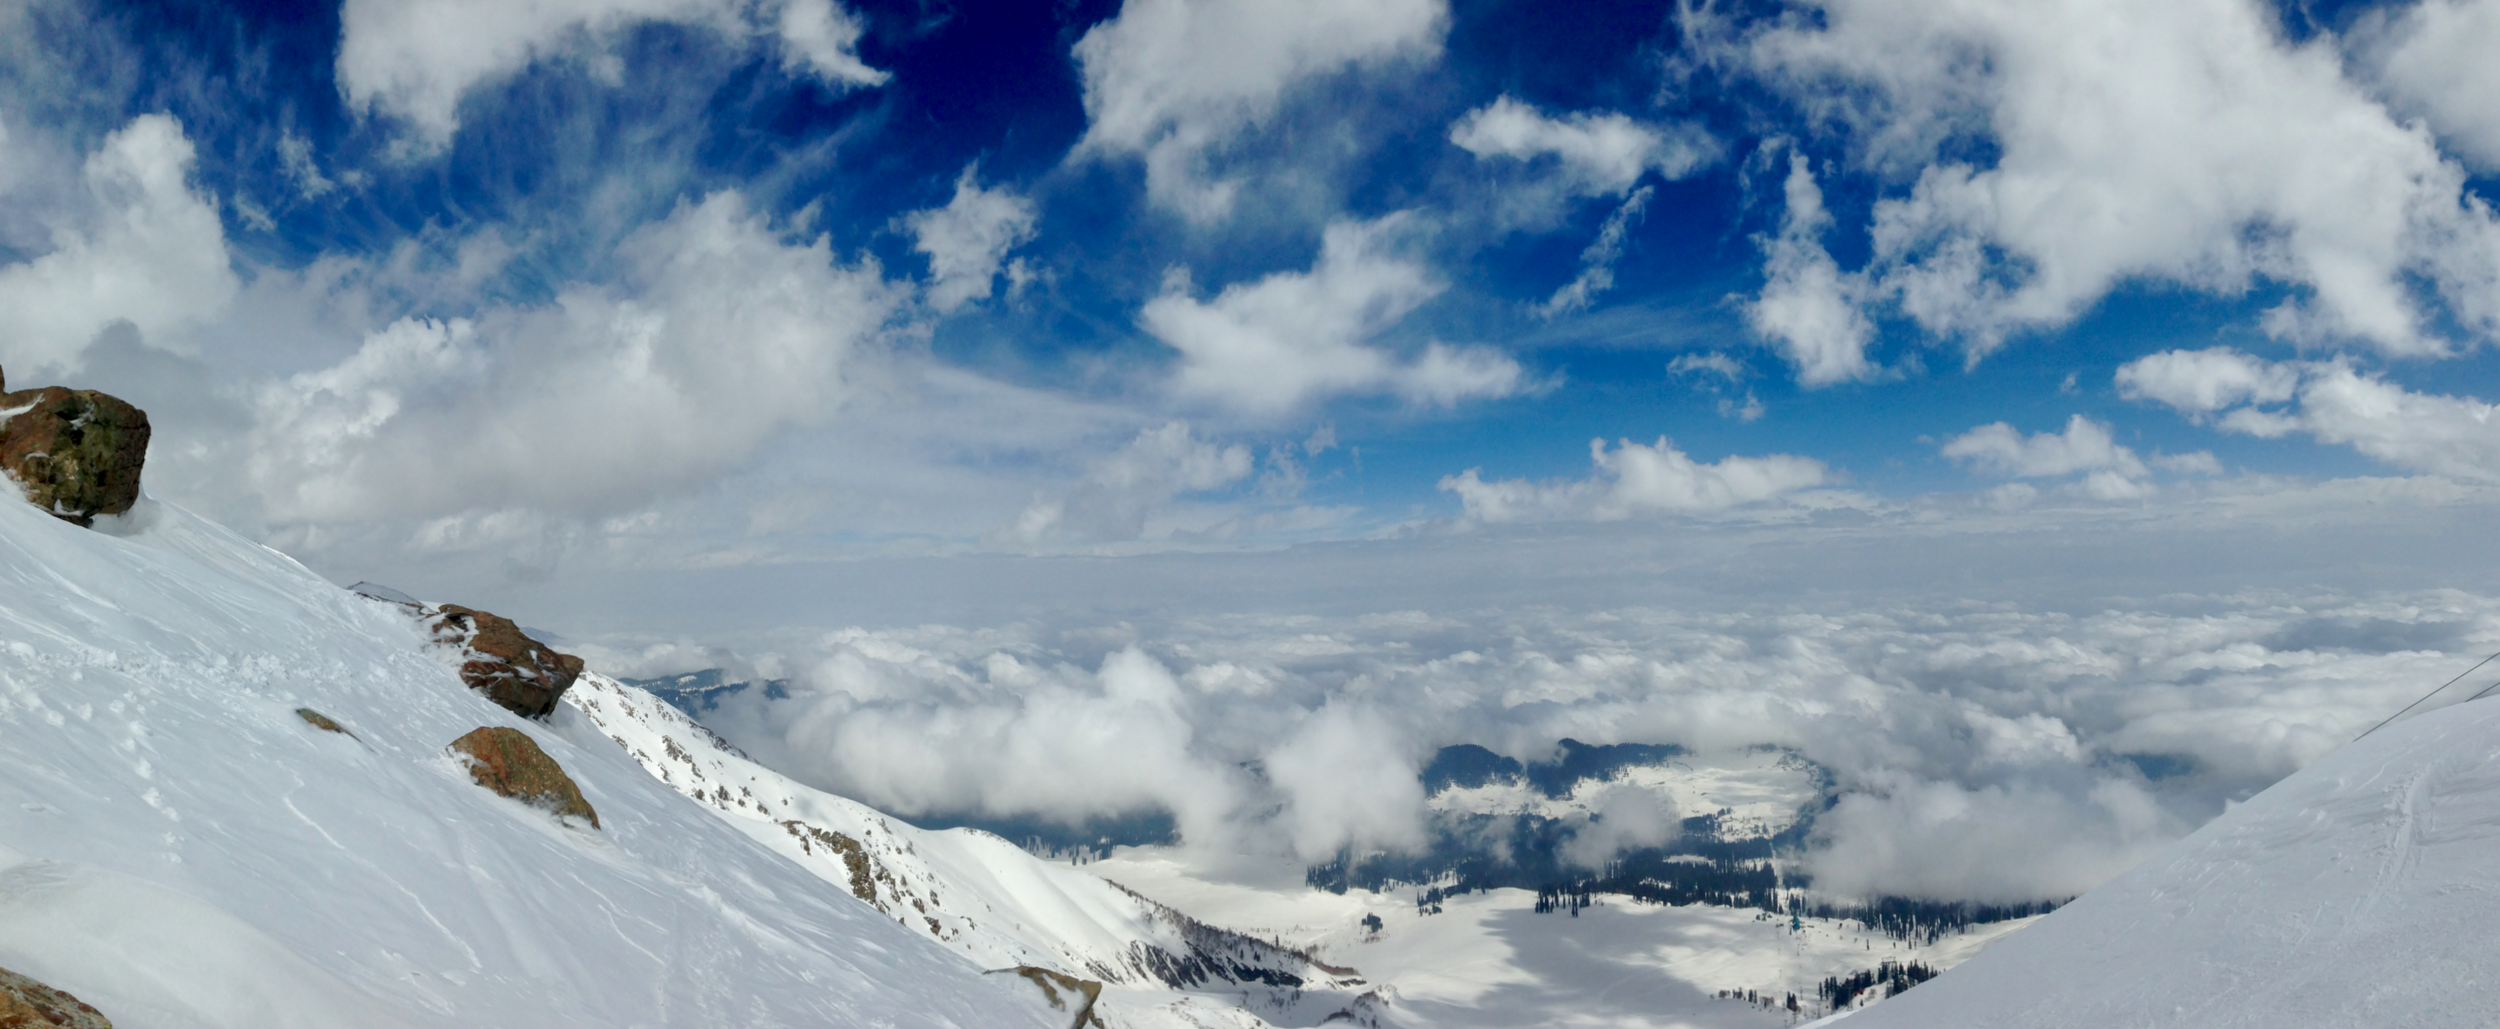 14000ft up in Paradise at the top of the 2nd phase gondola- Kongdoori Mountain, Gulmarg, Himalayas. Looking over towards Pakistan.